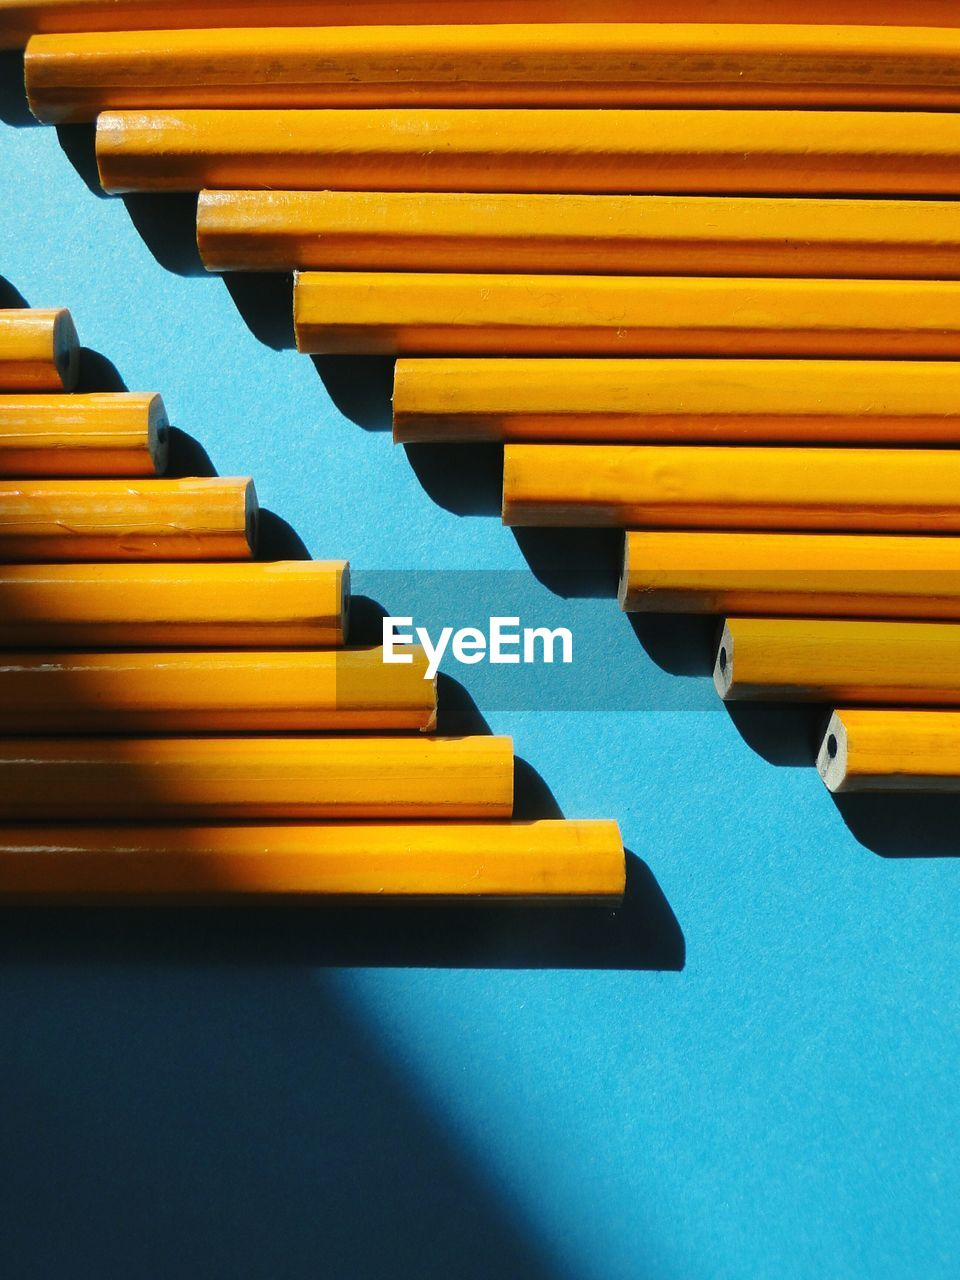 Close-Up Of Yellow Pencils On Blue Table